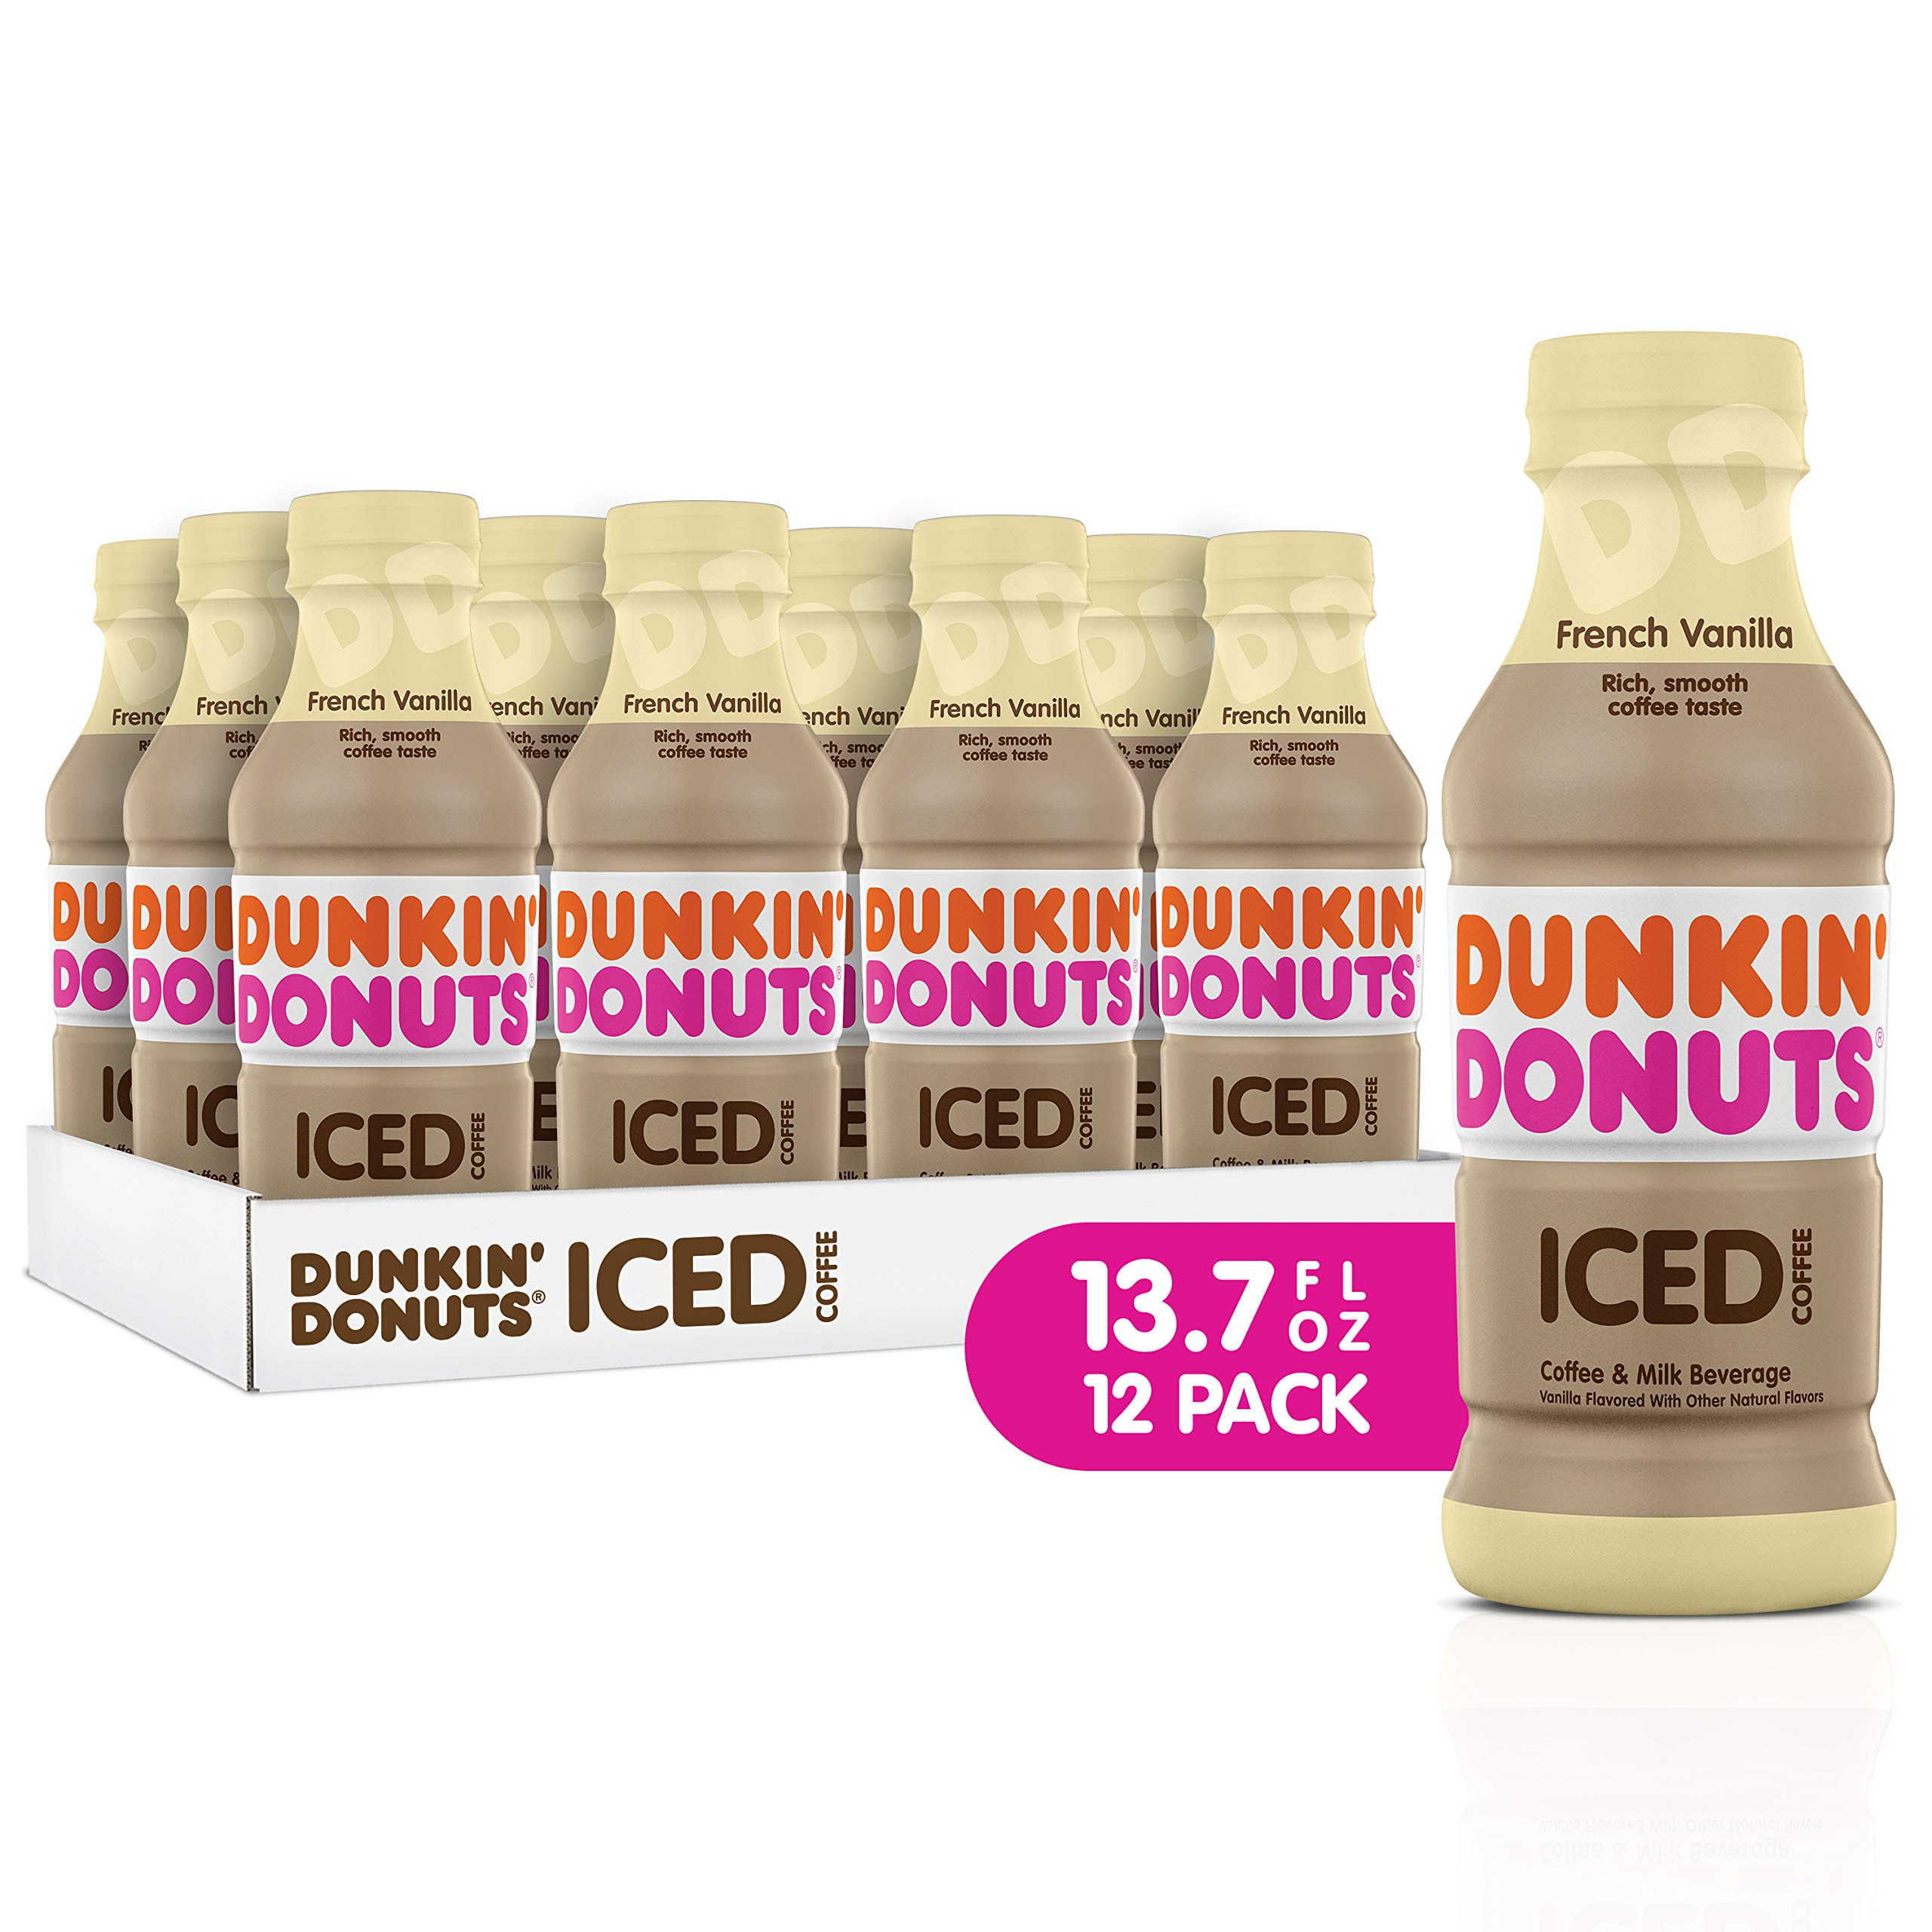 Dunkin Donuts Iced Coffee, French Vanilla, 13.7 Fluid Ounce (Pack of 12) by Dunkin' Donuts